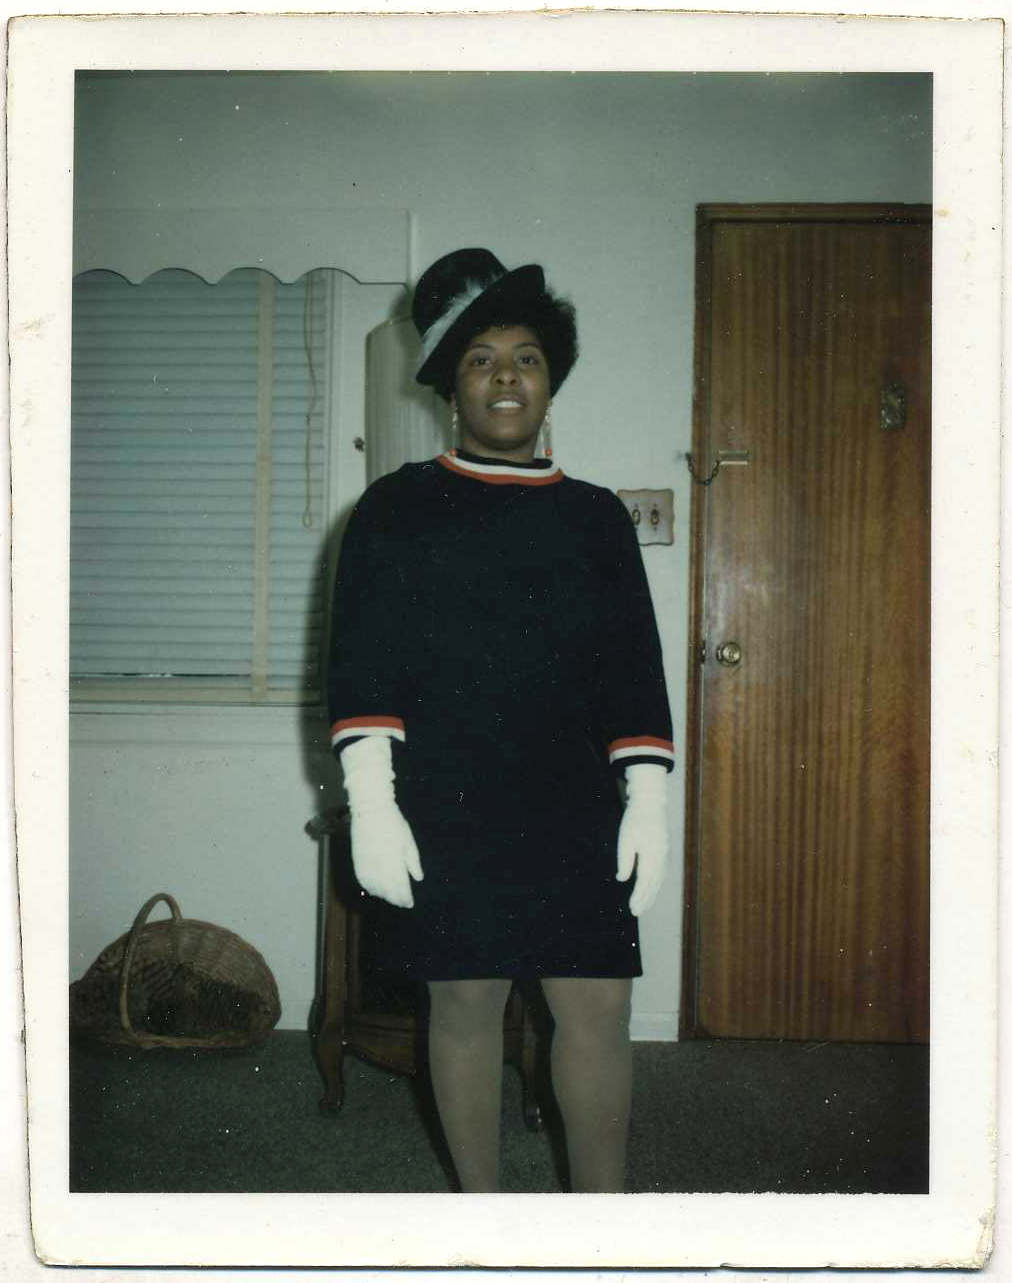 13 VINTAGE POLAROID PICTURES - AFRICAN AMERICAN PEOPLE 1970s & 80s ...